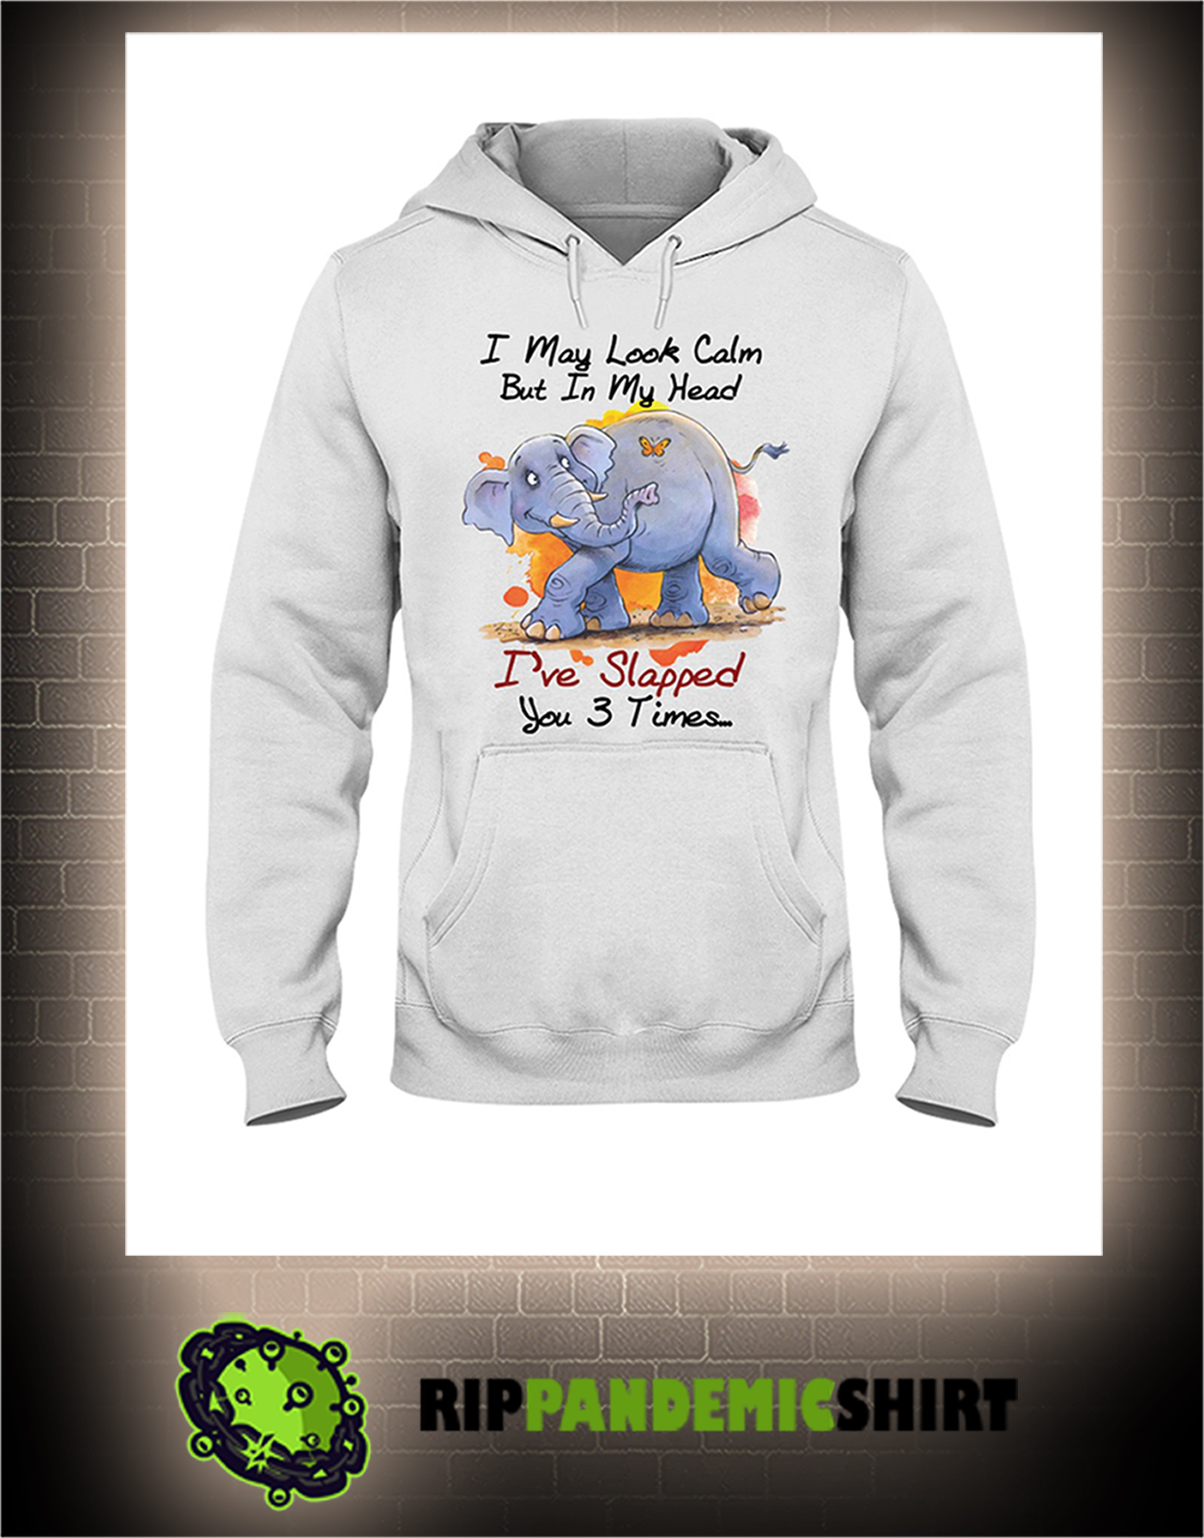 Elephant and butterfly I may look calm but in my head I've slapped you 3 times hoodie